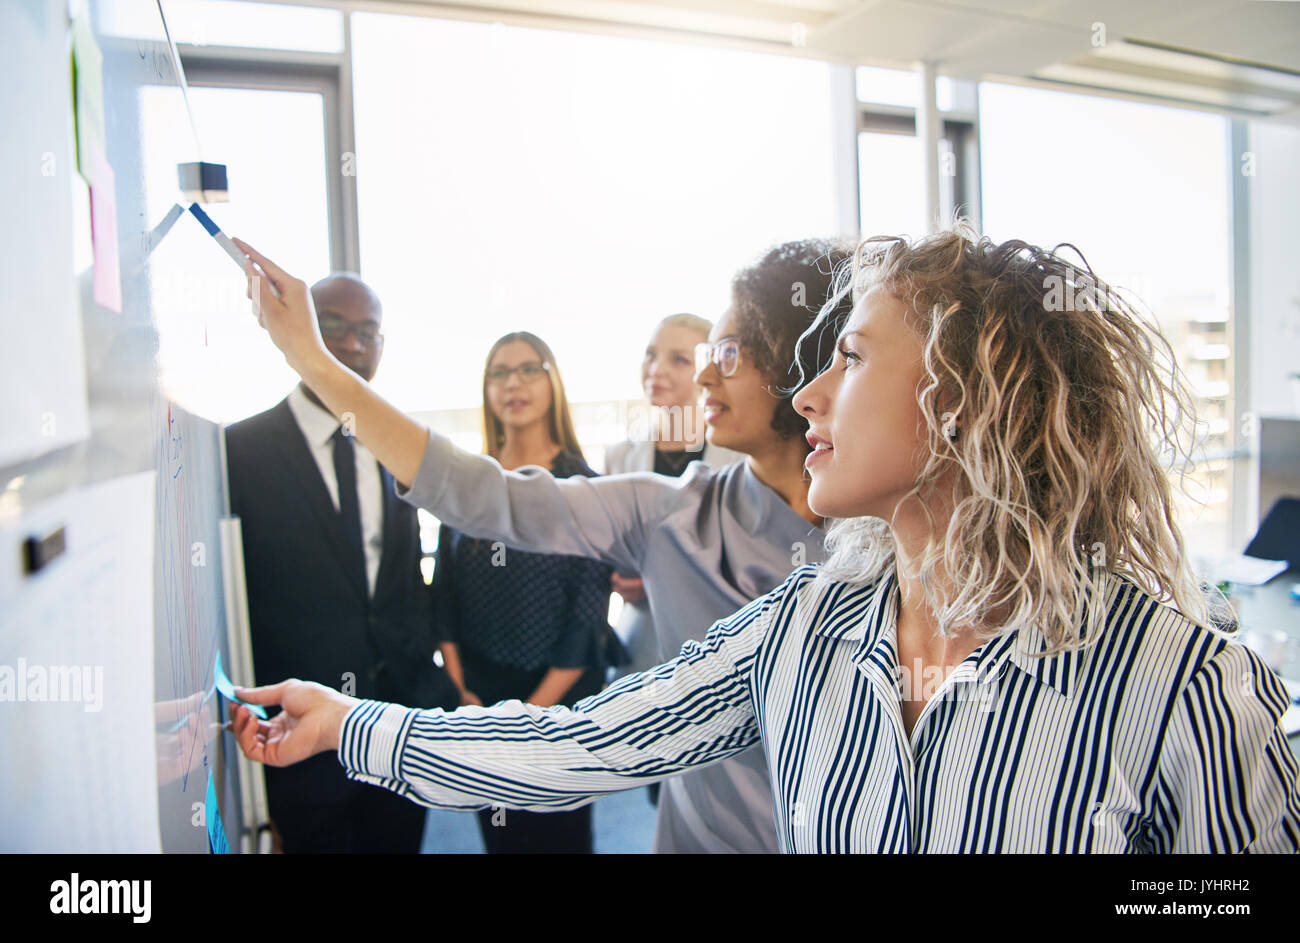 Group of focused business colleagues brainstorming together on a whiteboard during a strategy session in a bright - Stock Image